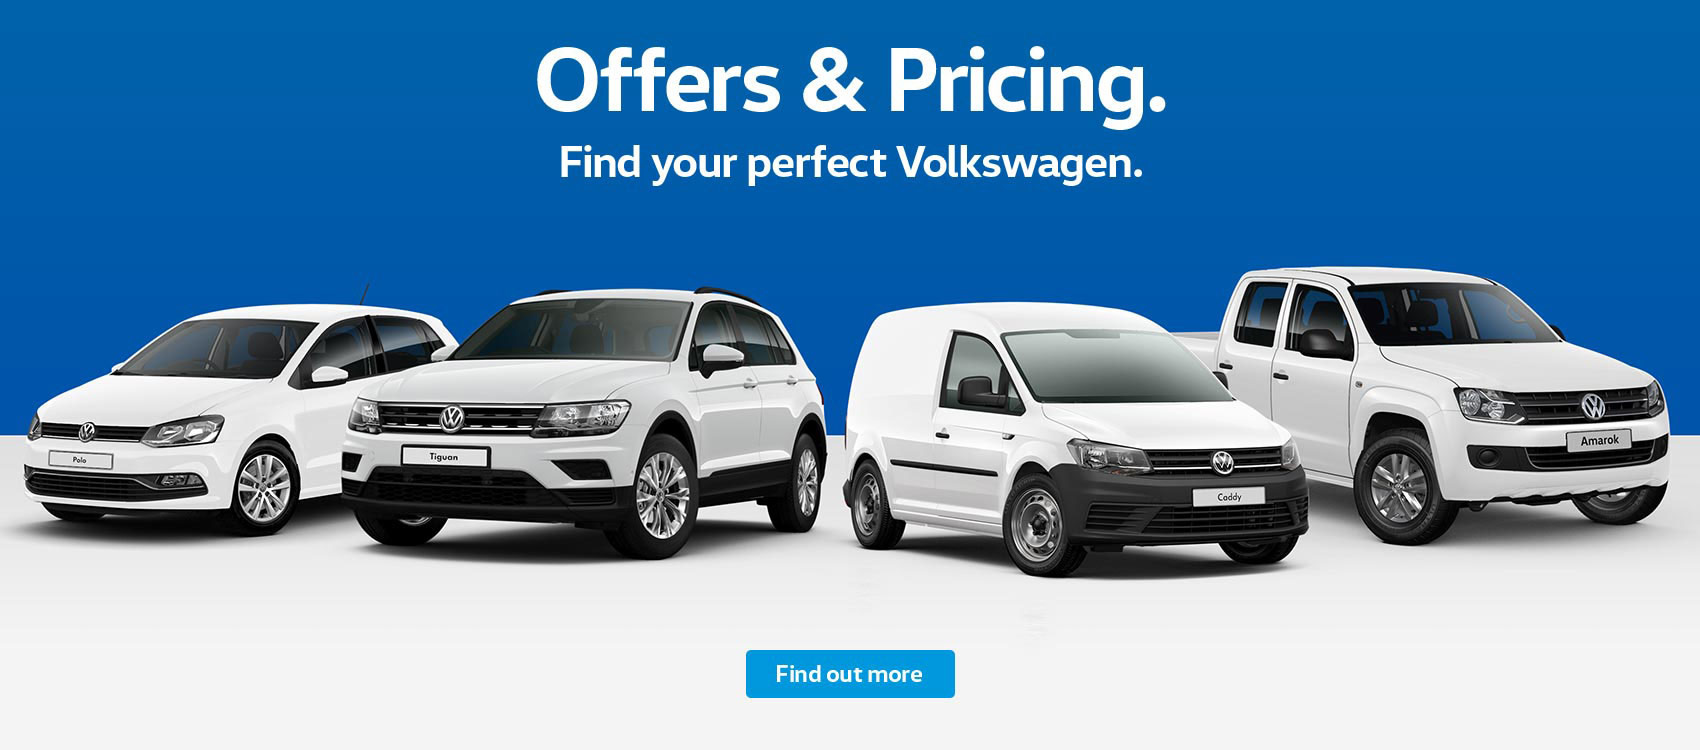 Volkswagen offers and pricing. Find your perfect Volkswagen at NMG VW.